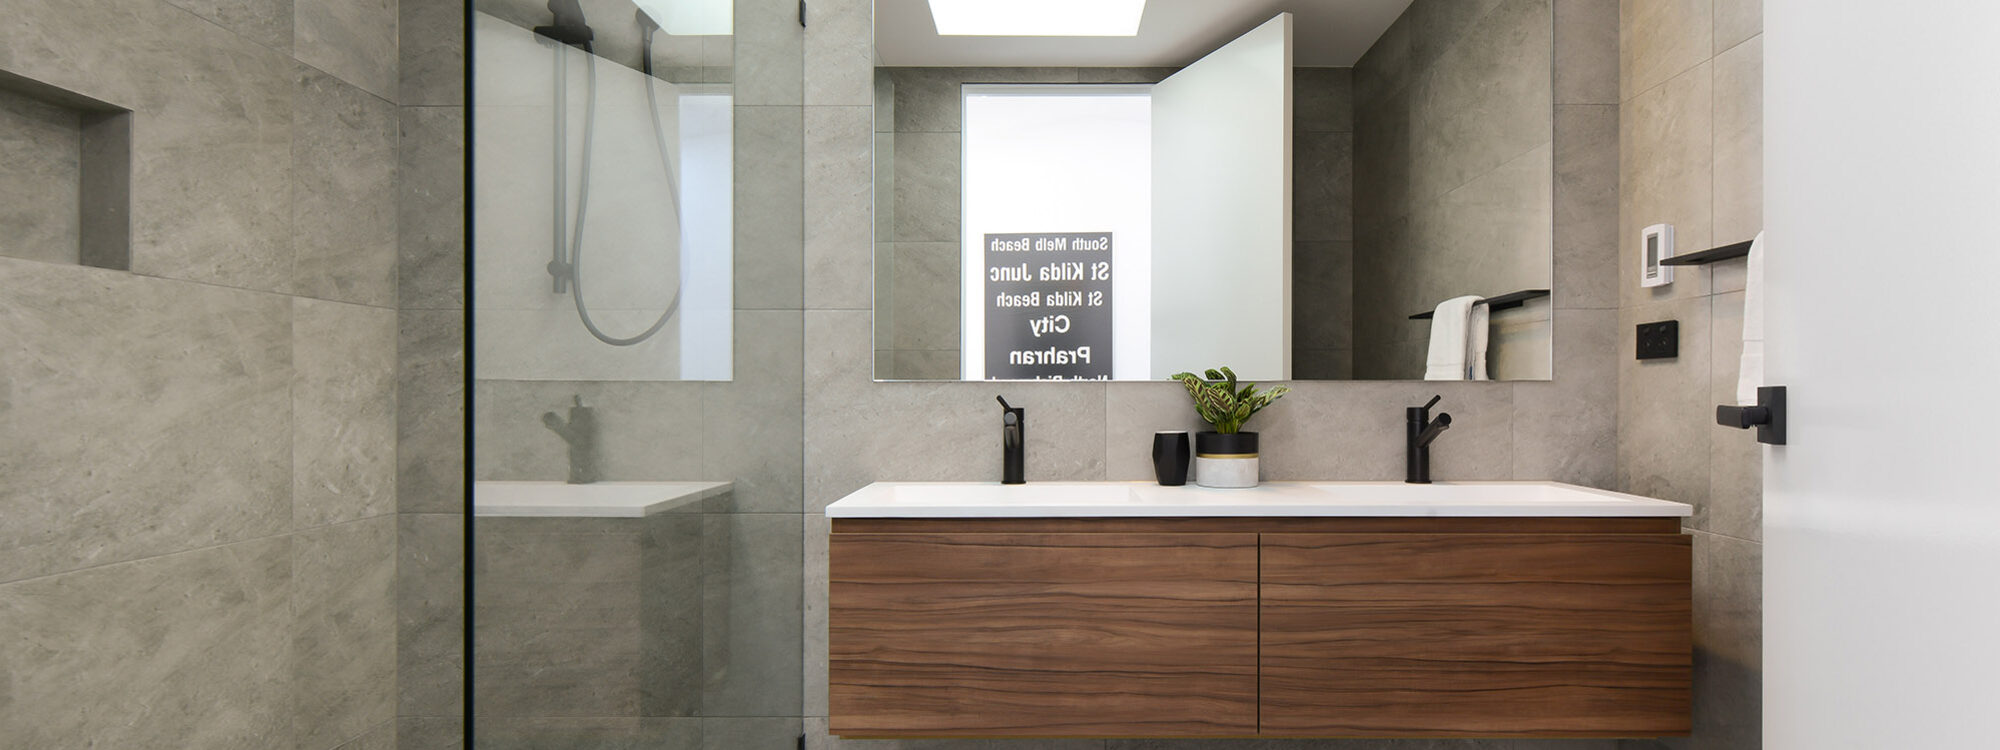 County Down - Port Melbourne - Bathroom b